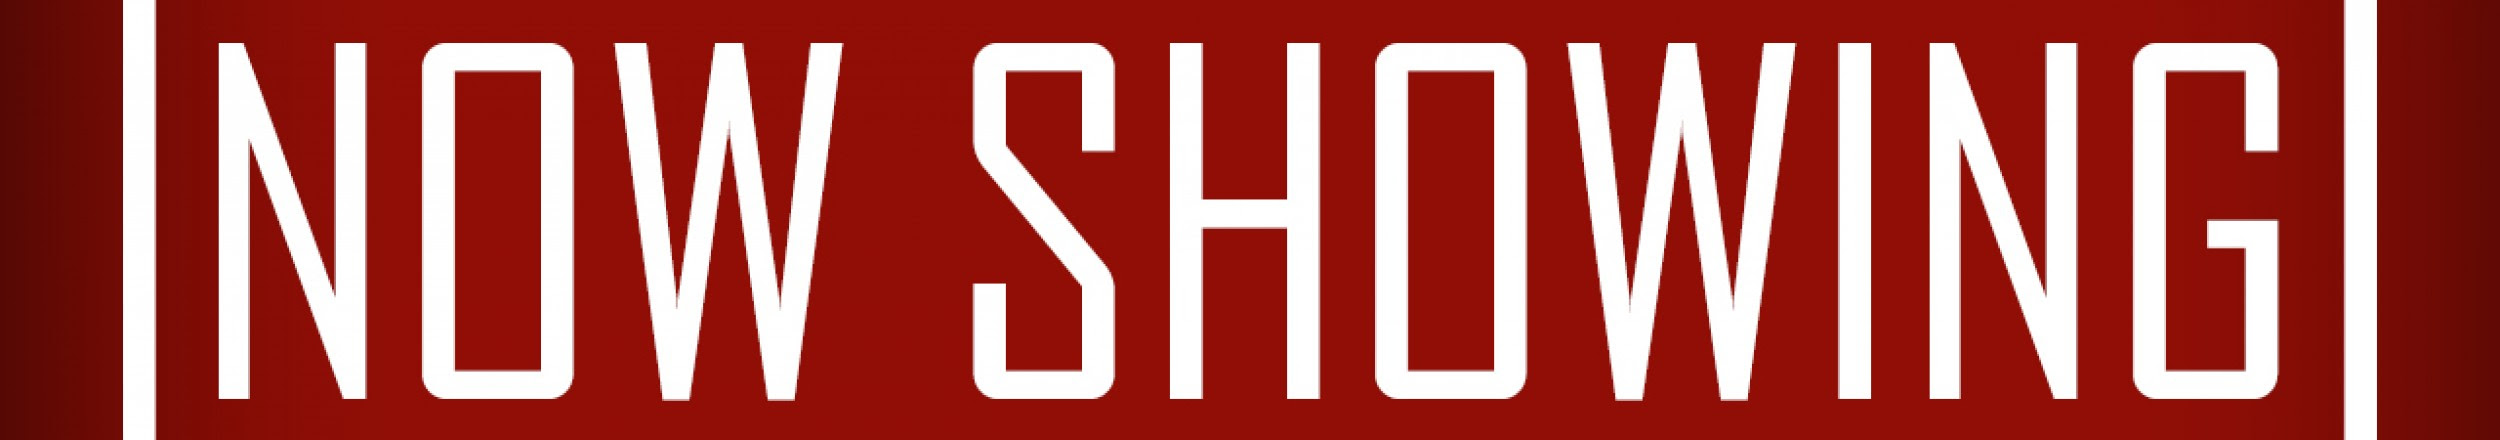 Now Showing Logo 2500x440